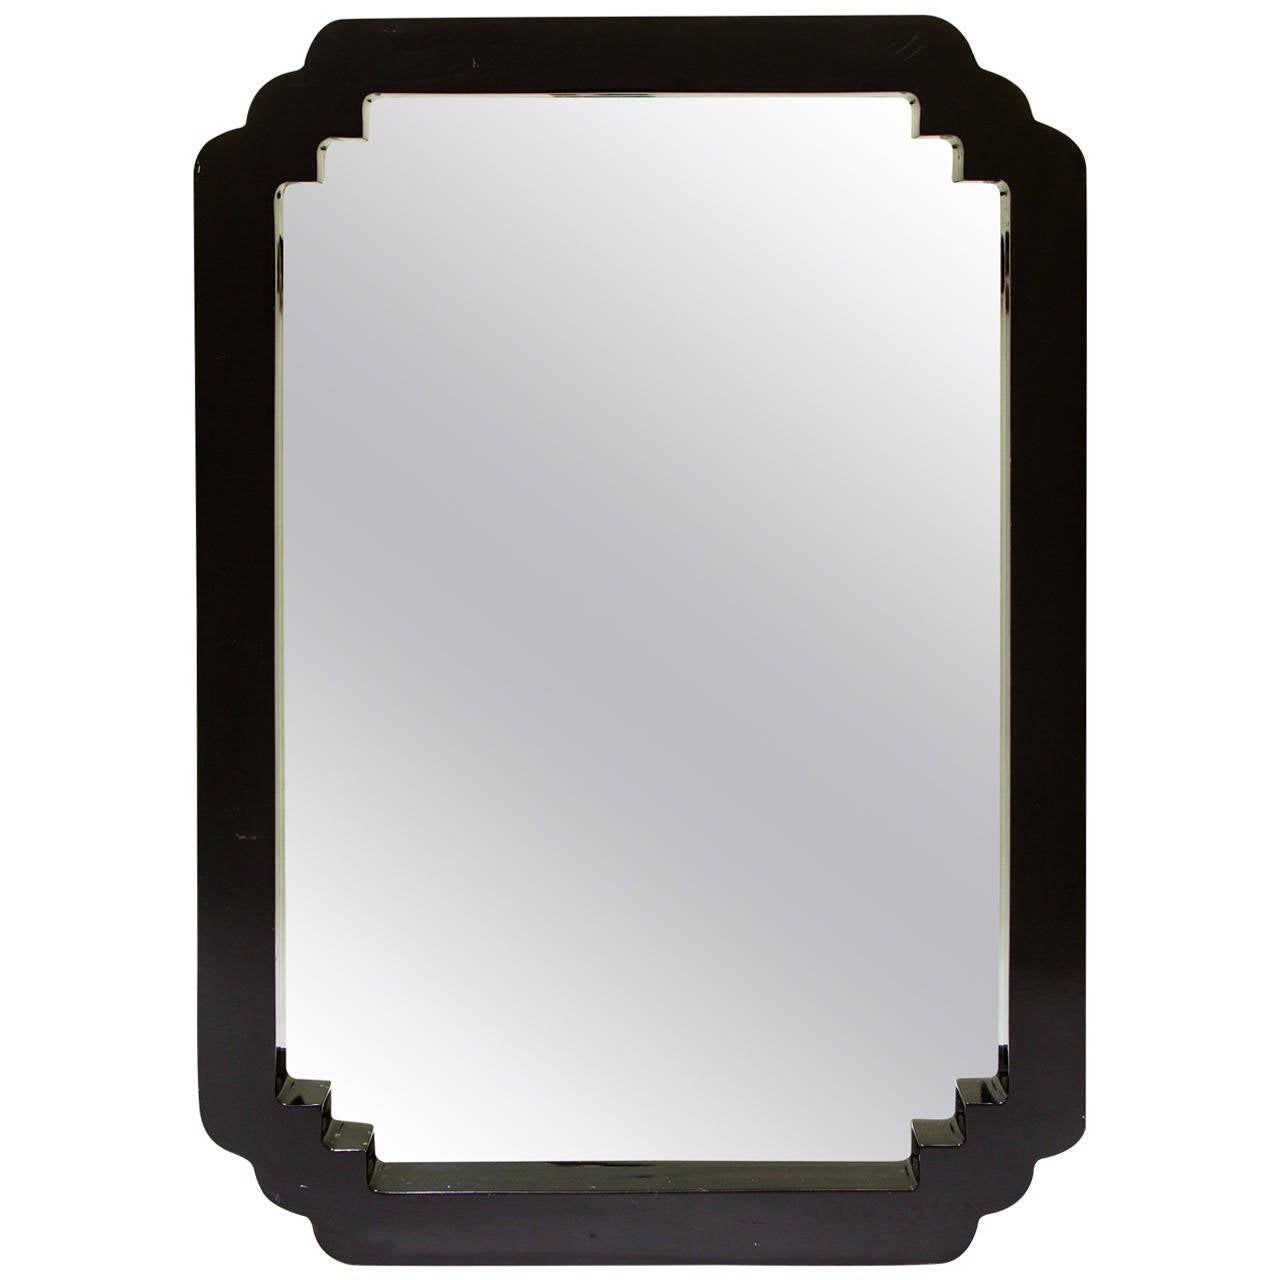 Asian style lacquered wood wall mirror at 1stdibs for Asian style mirror